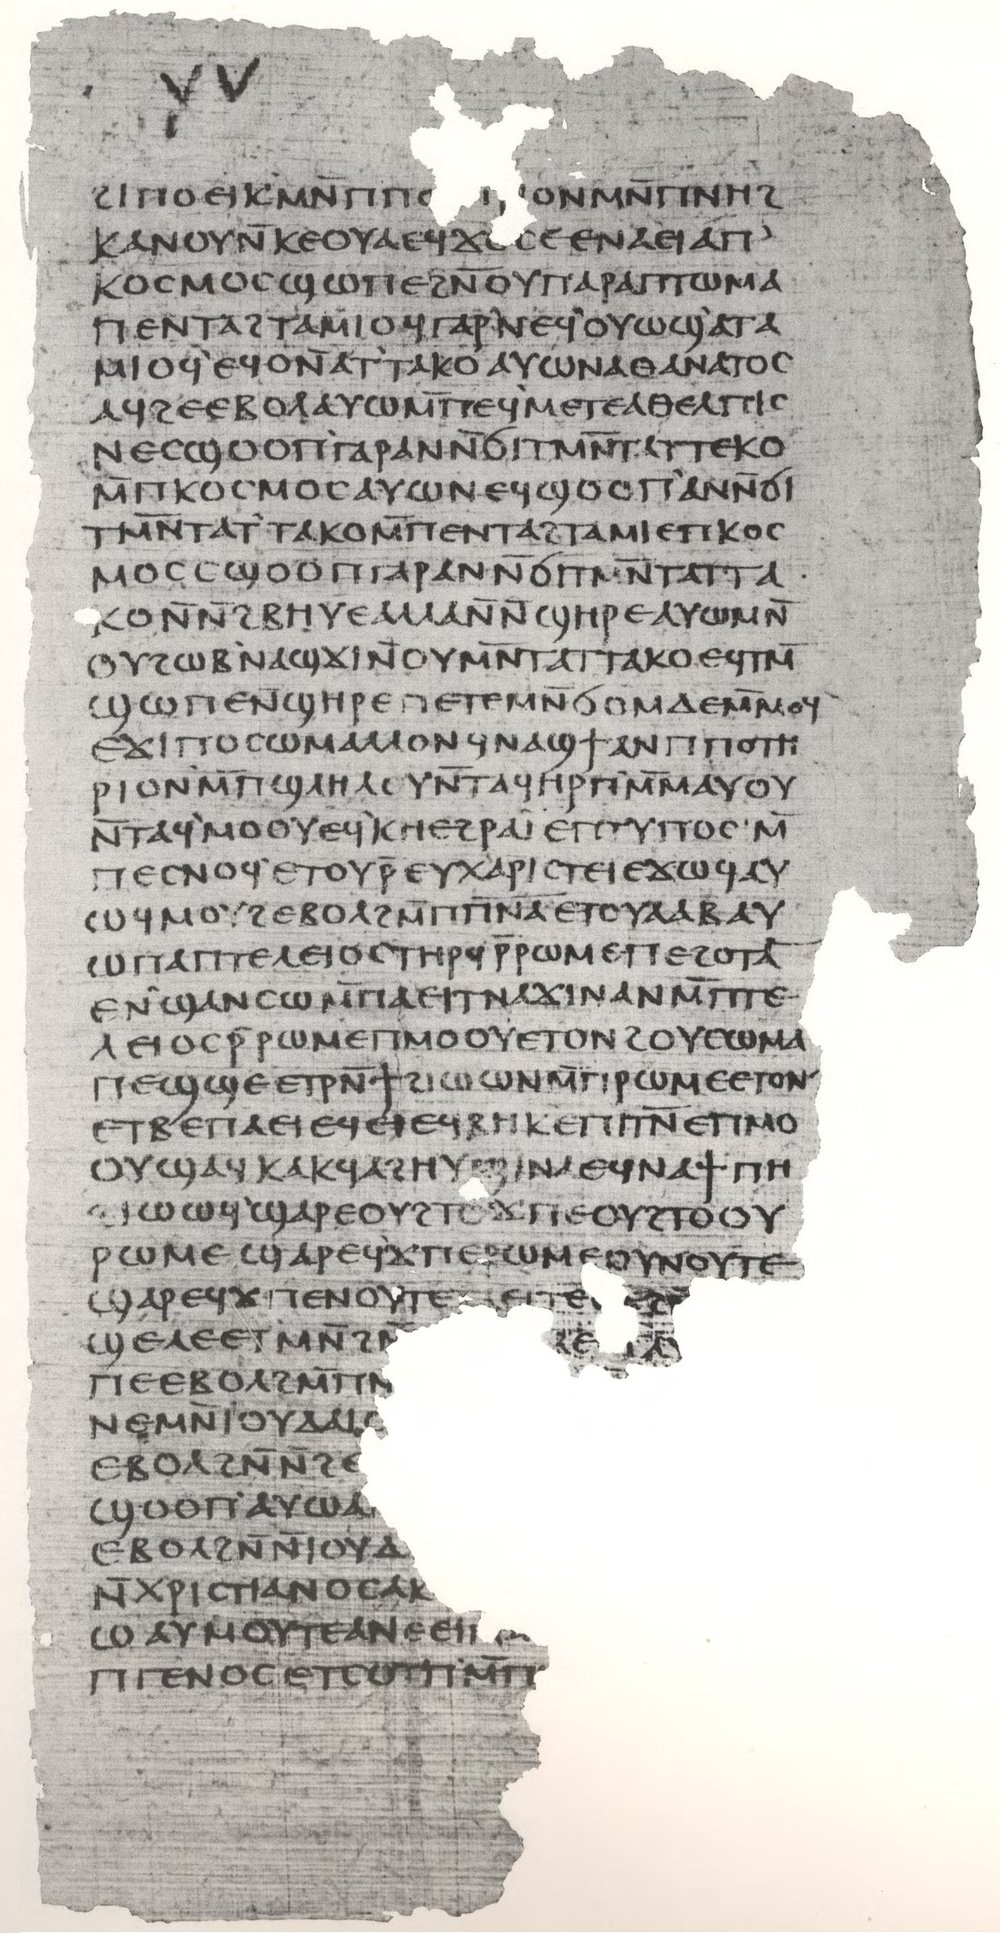 Gospel_of_Philip_facsimile_Page_75.jpg